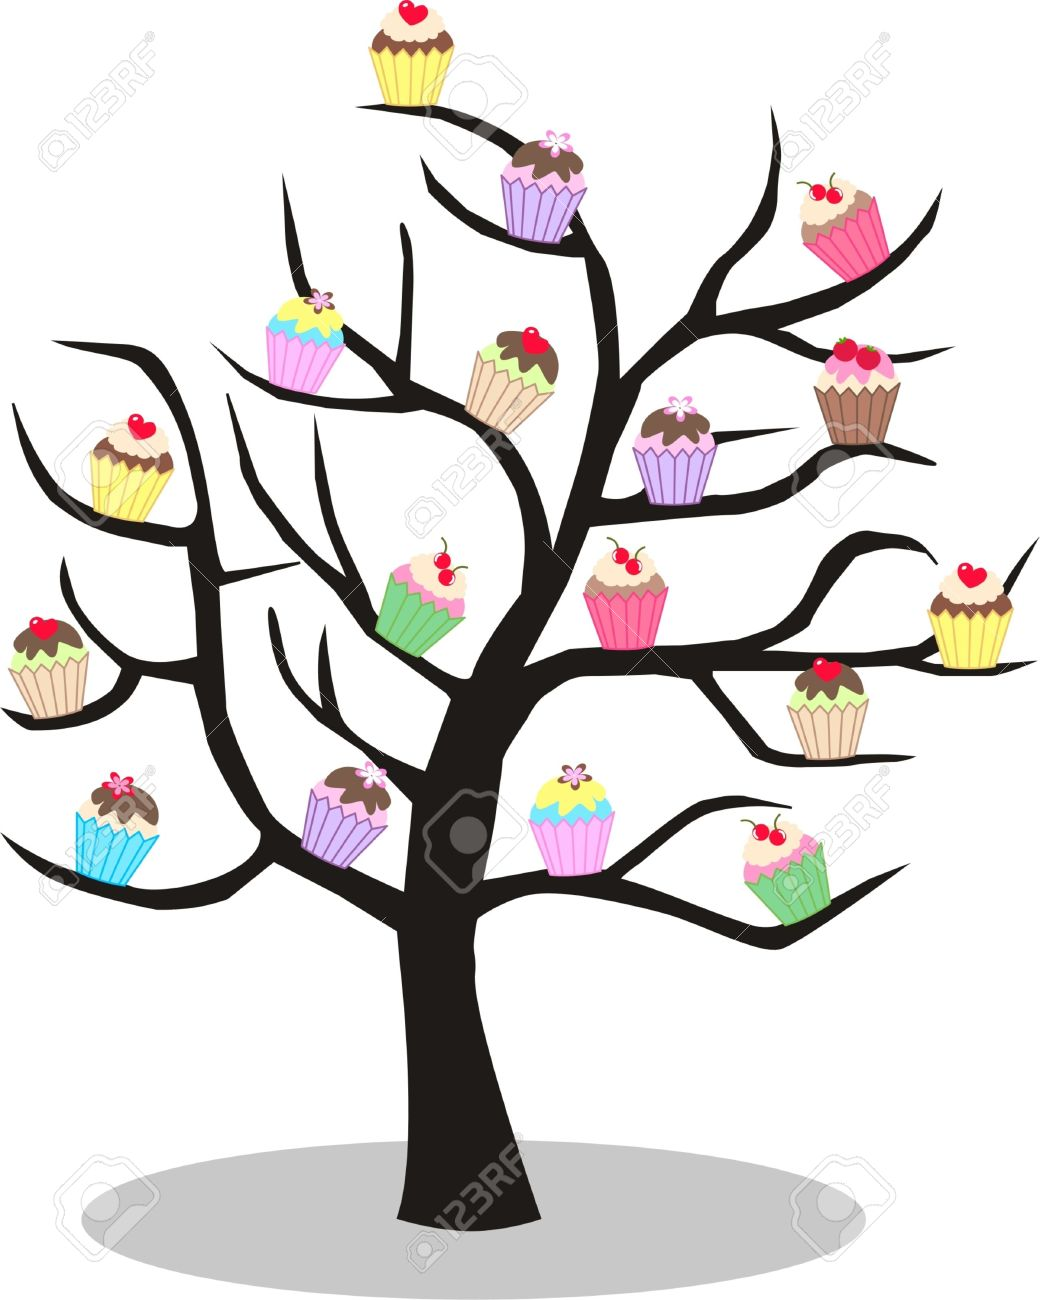 Free cliparts download images. Clipart cake tree